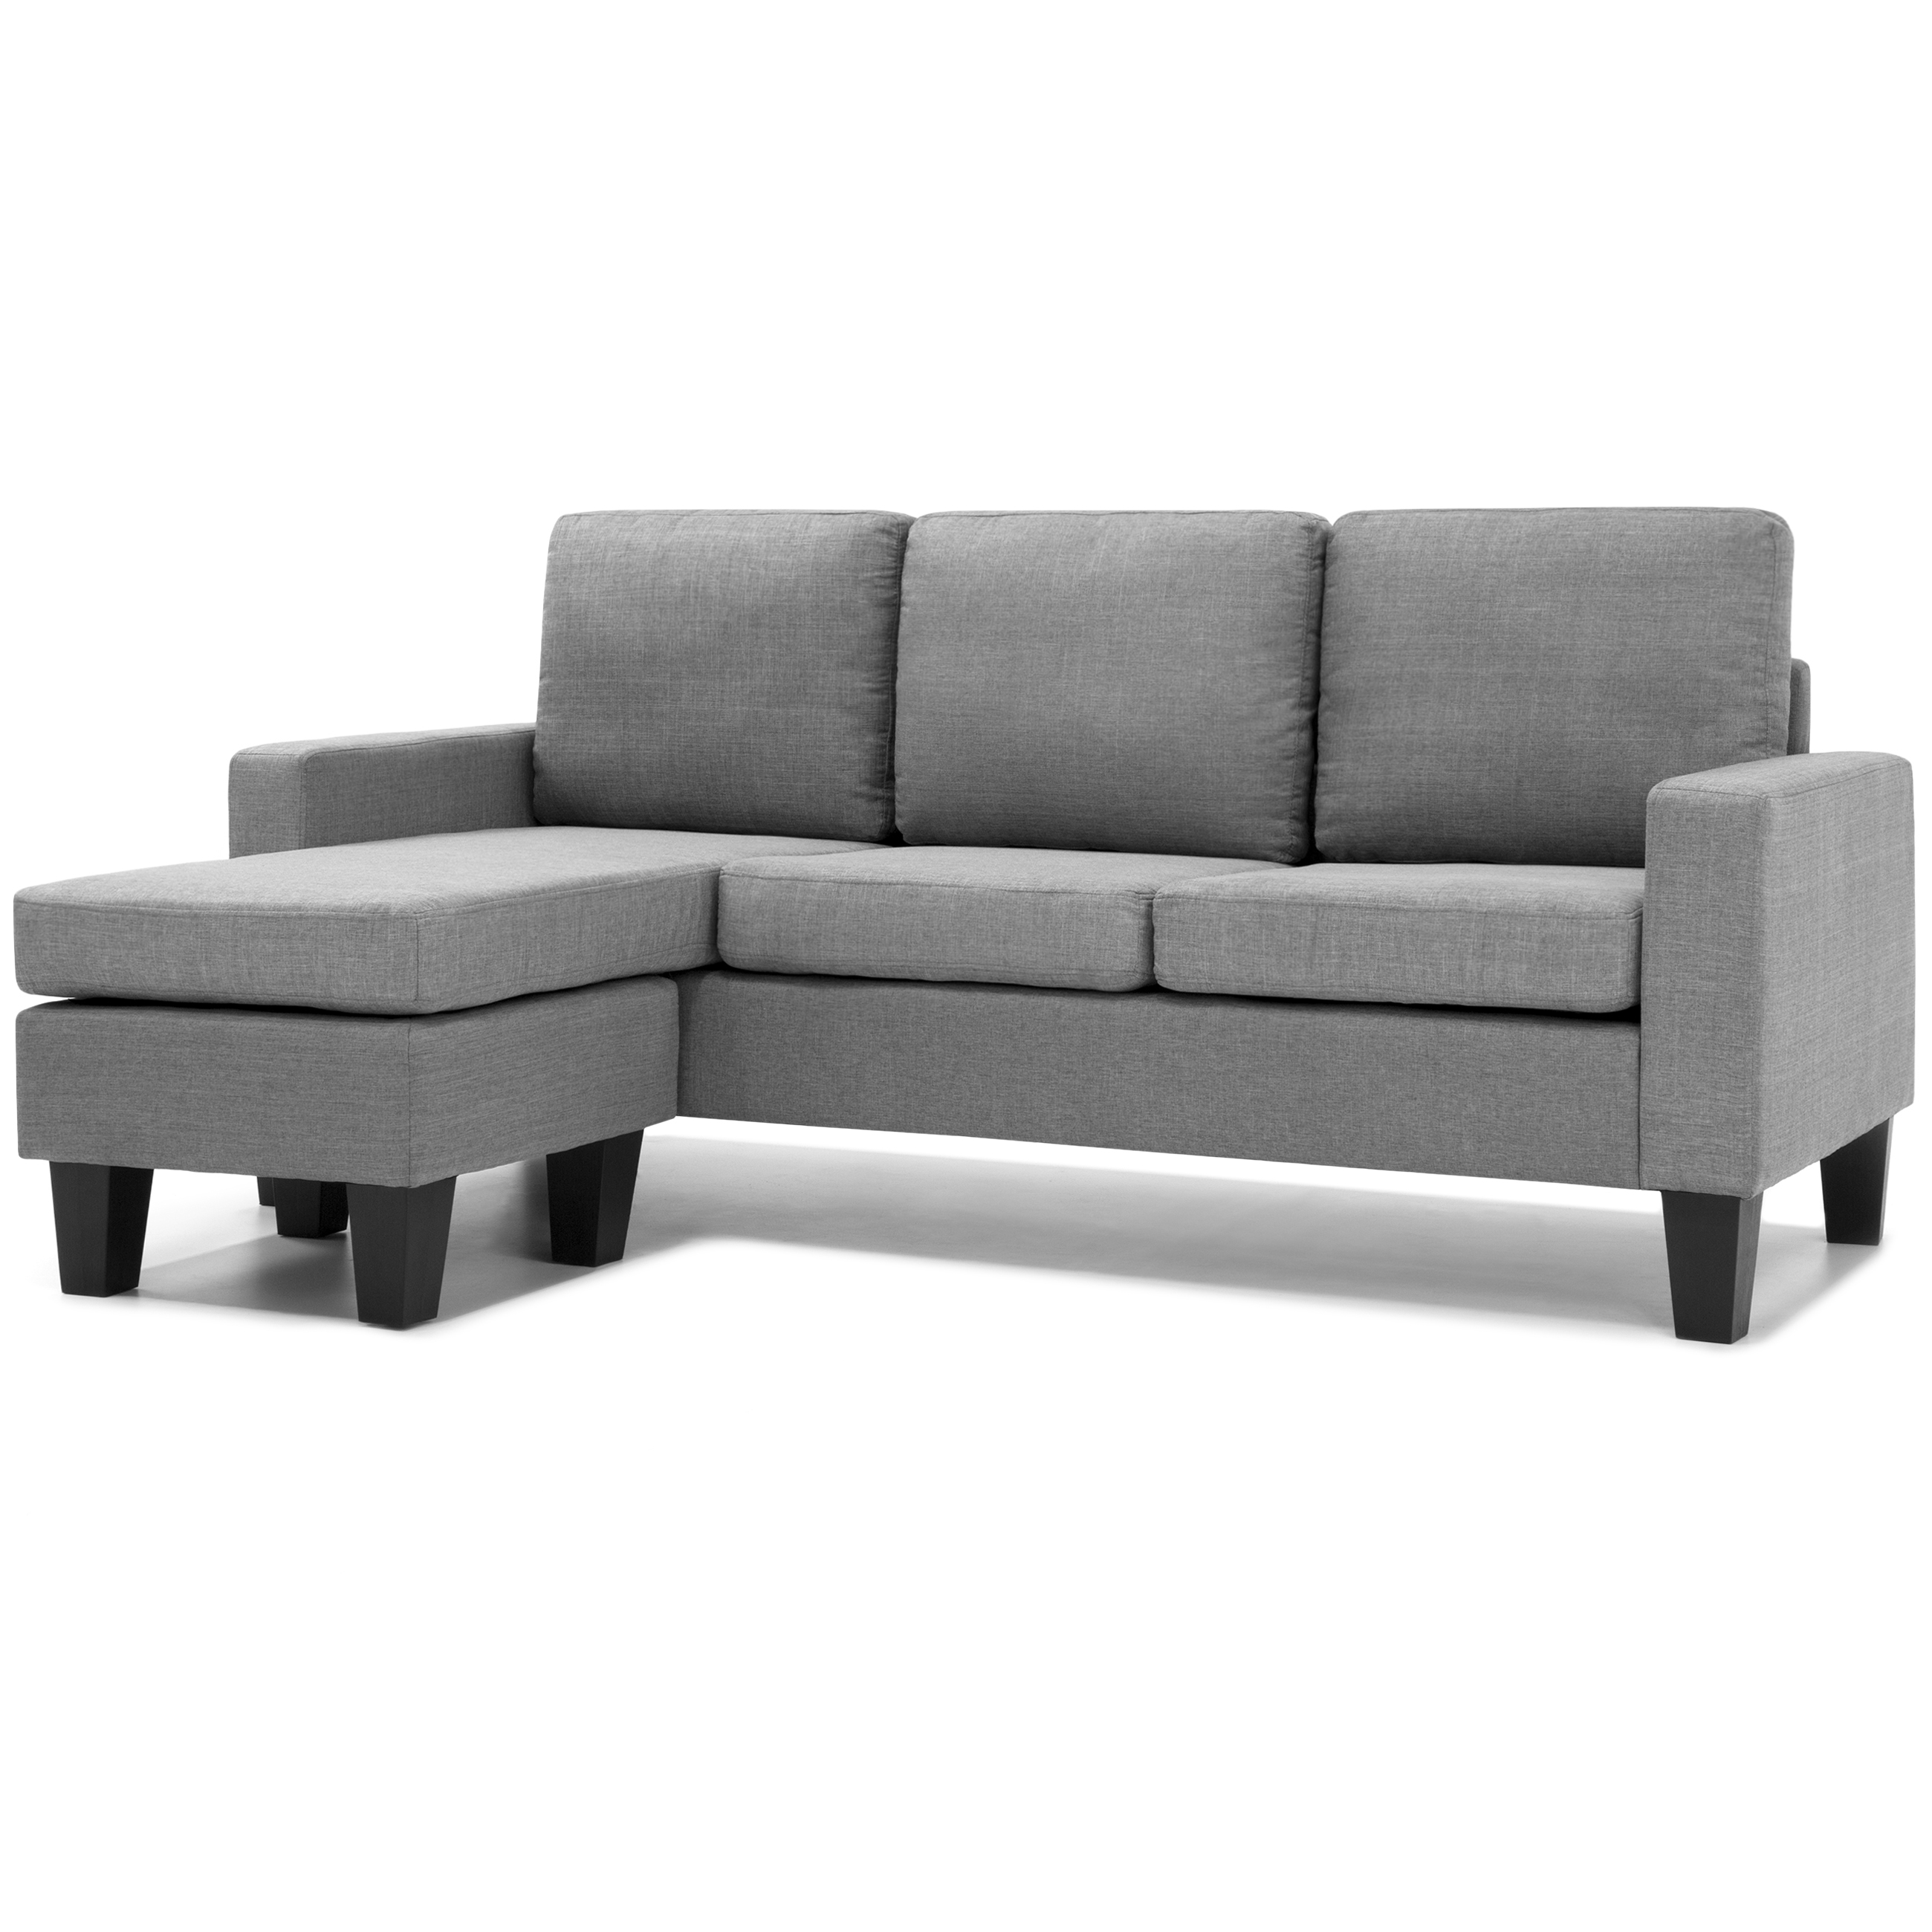 Best Choice Products Home Linen L Shape Sectional Sofa Couch W/ Reversible  Chaise Ottoman